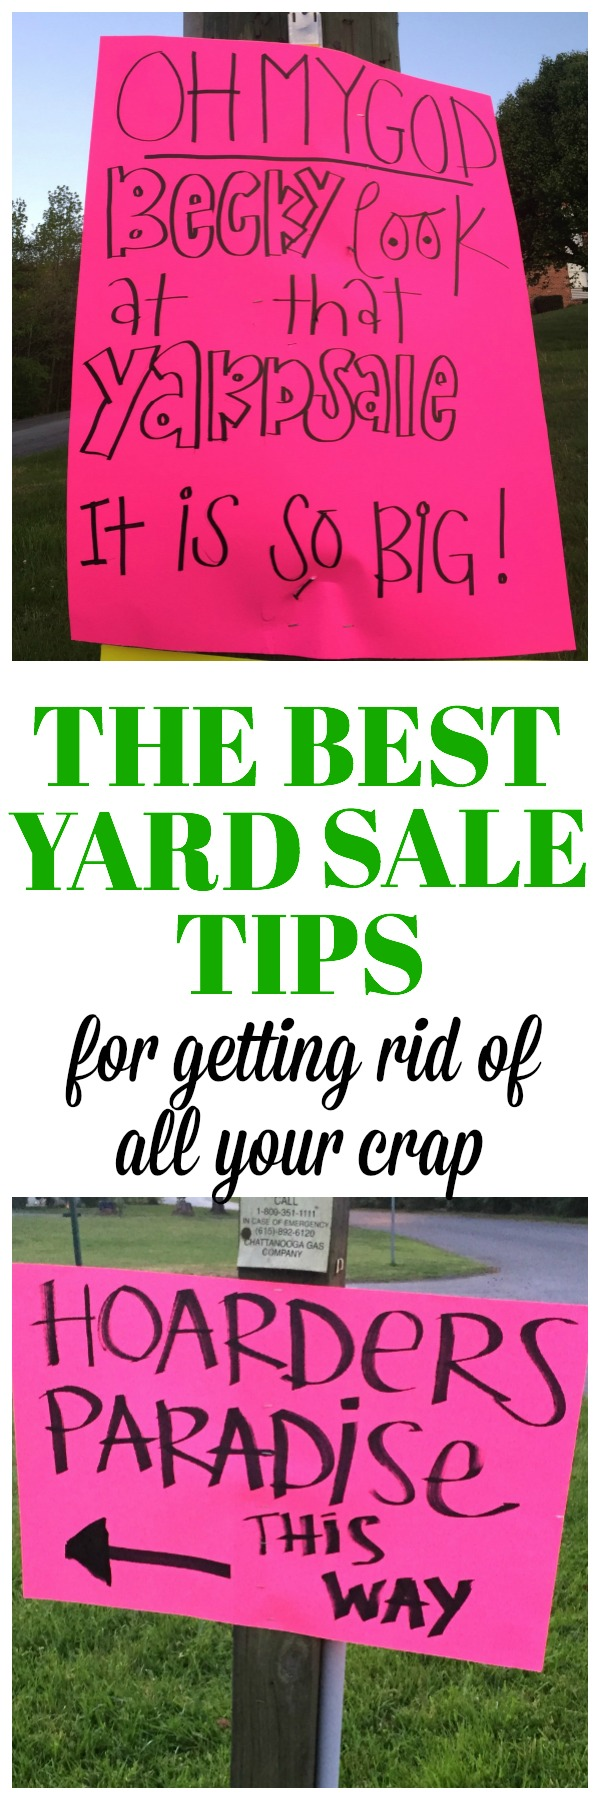 The Best Yard Sale Tips | Yard Sale Ideas | Best Yard Sale Signs | Yard Sale Pricing | Garage Sale Tips | Garage Sale Ideas